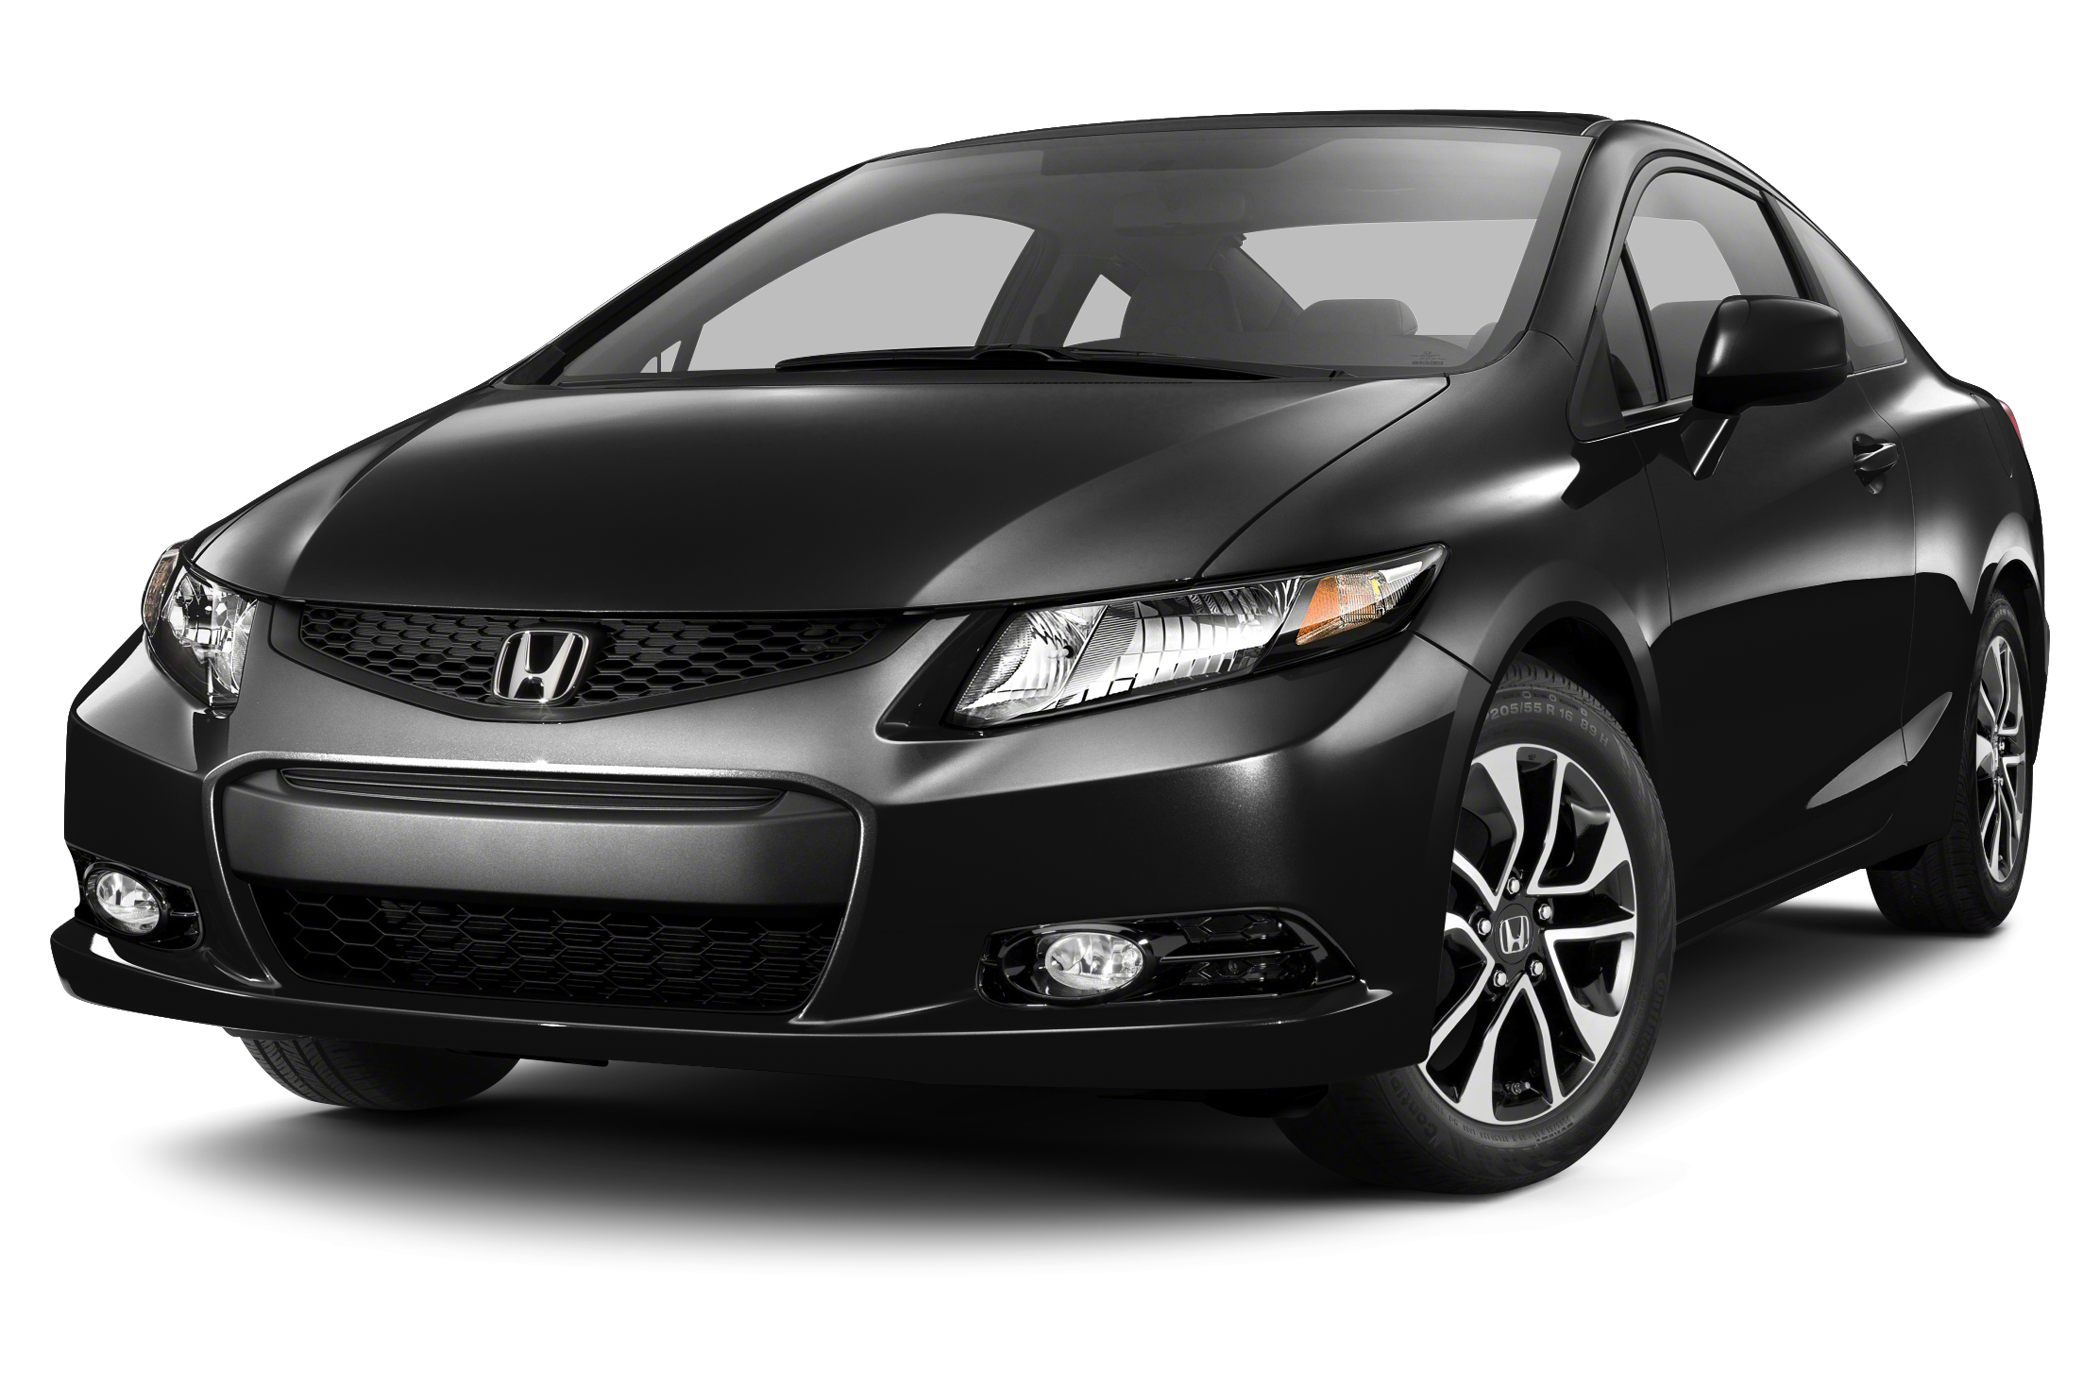 recall on honda civic 2013. Black Bedroom Furniture Sets. Home Design Ideas